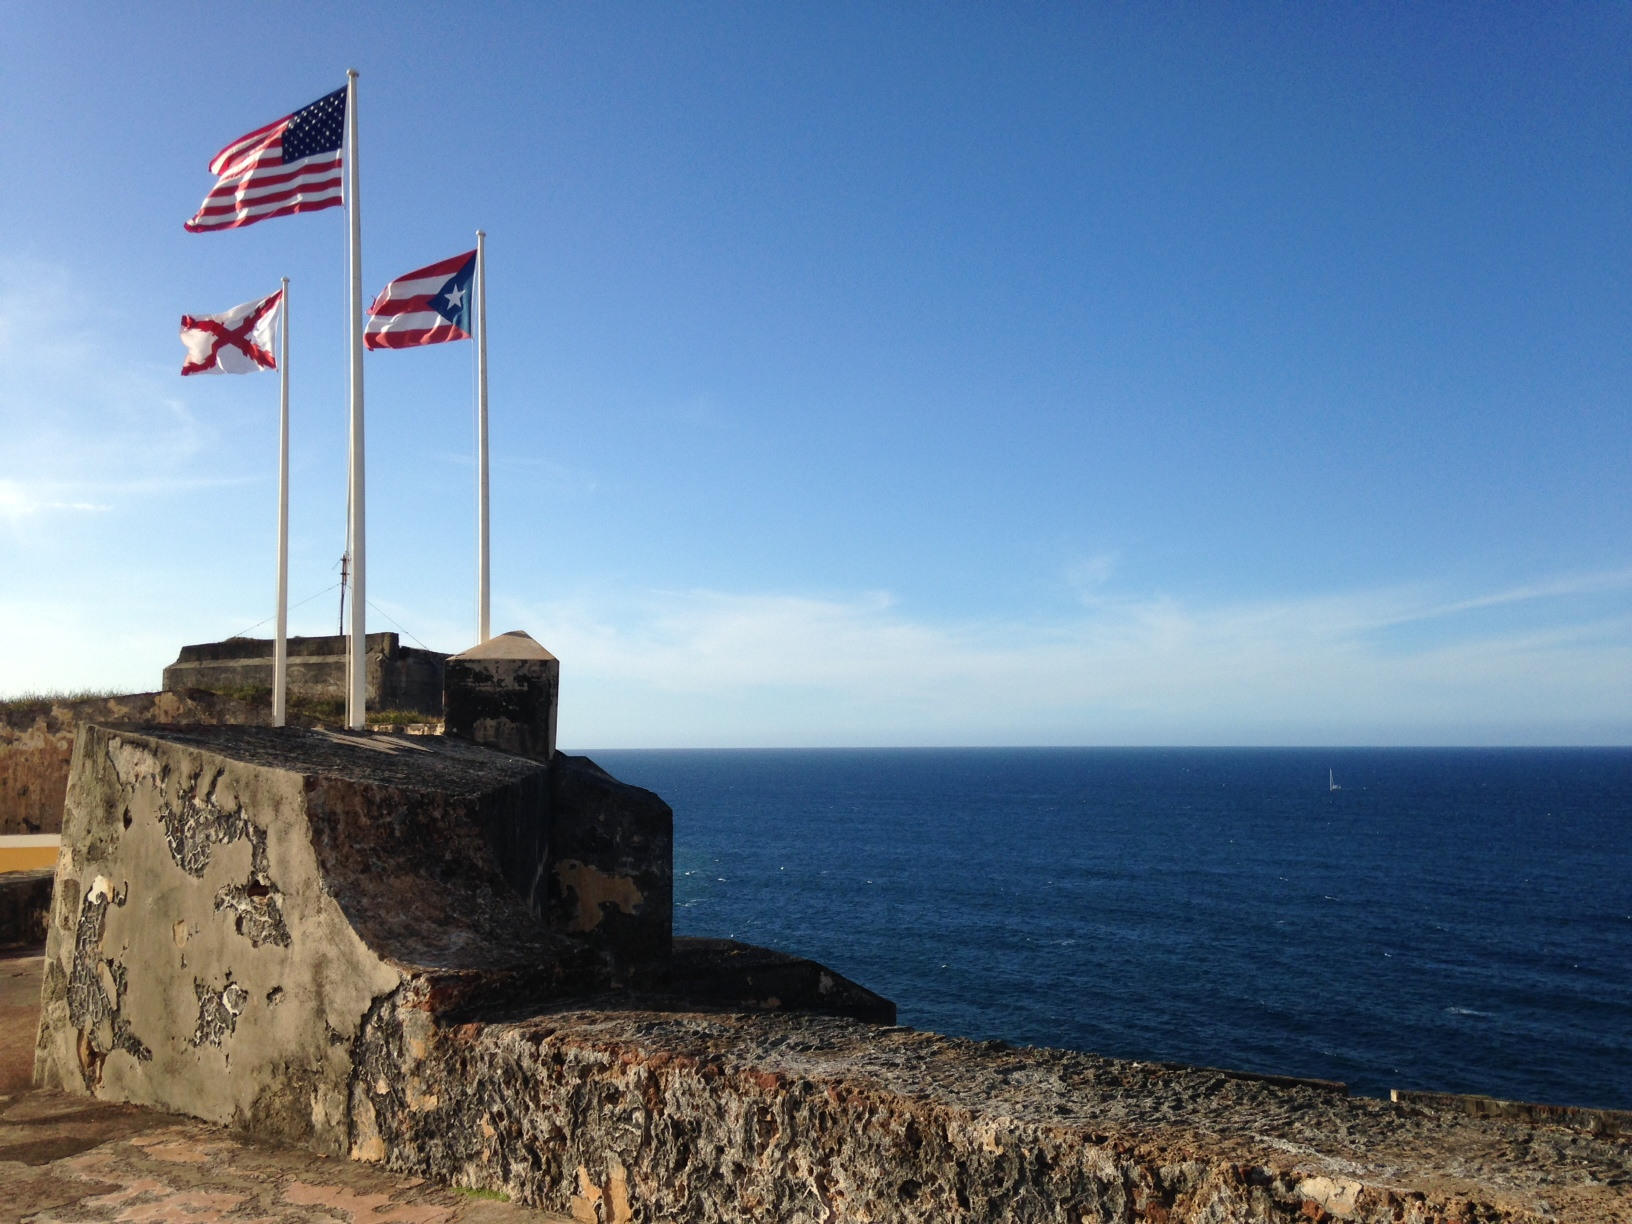 Puerto Rico, 1200 miles from Florida yet a world away